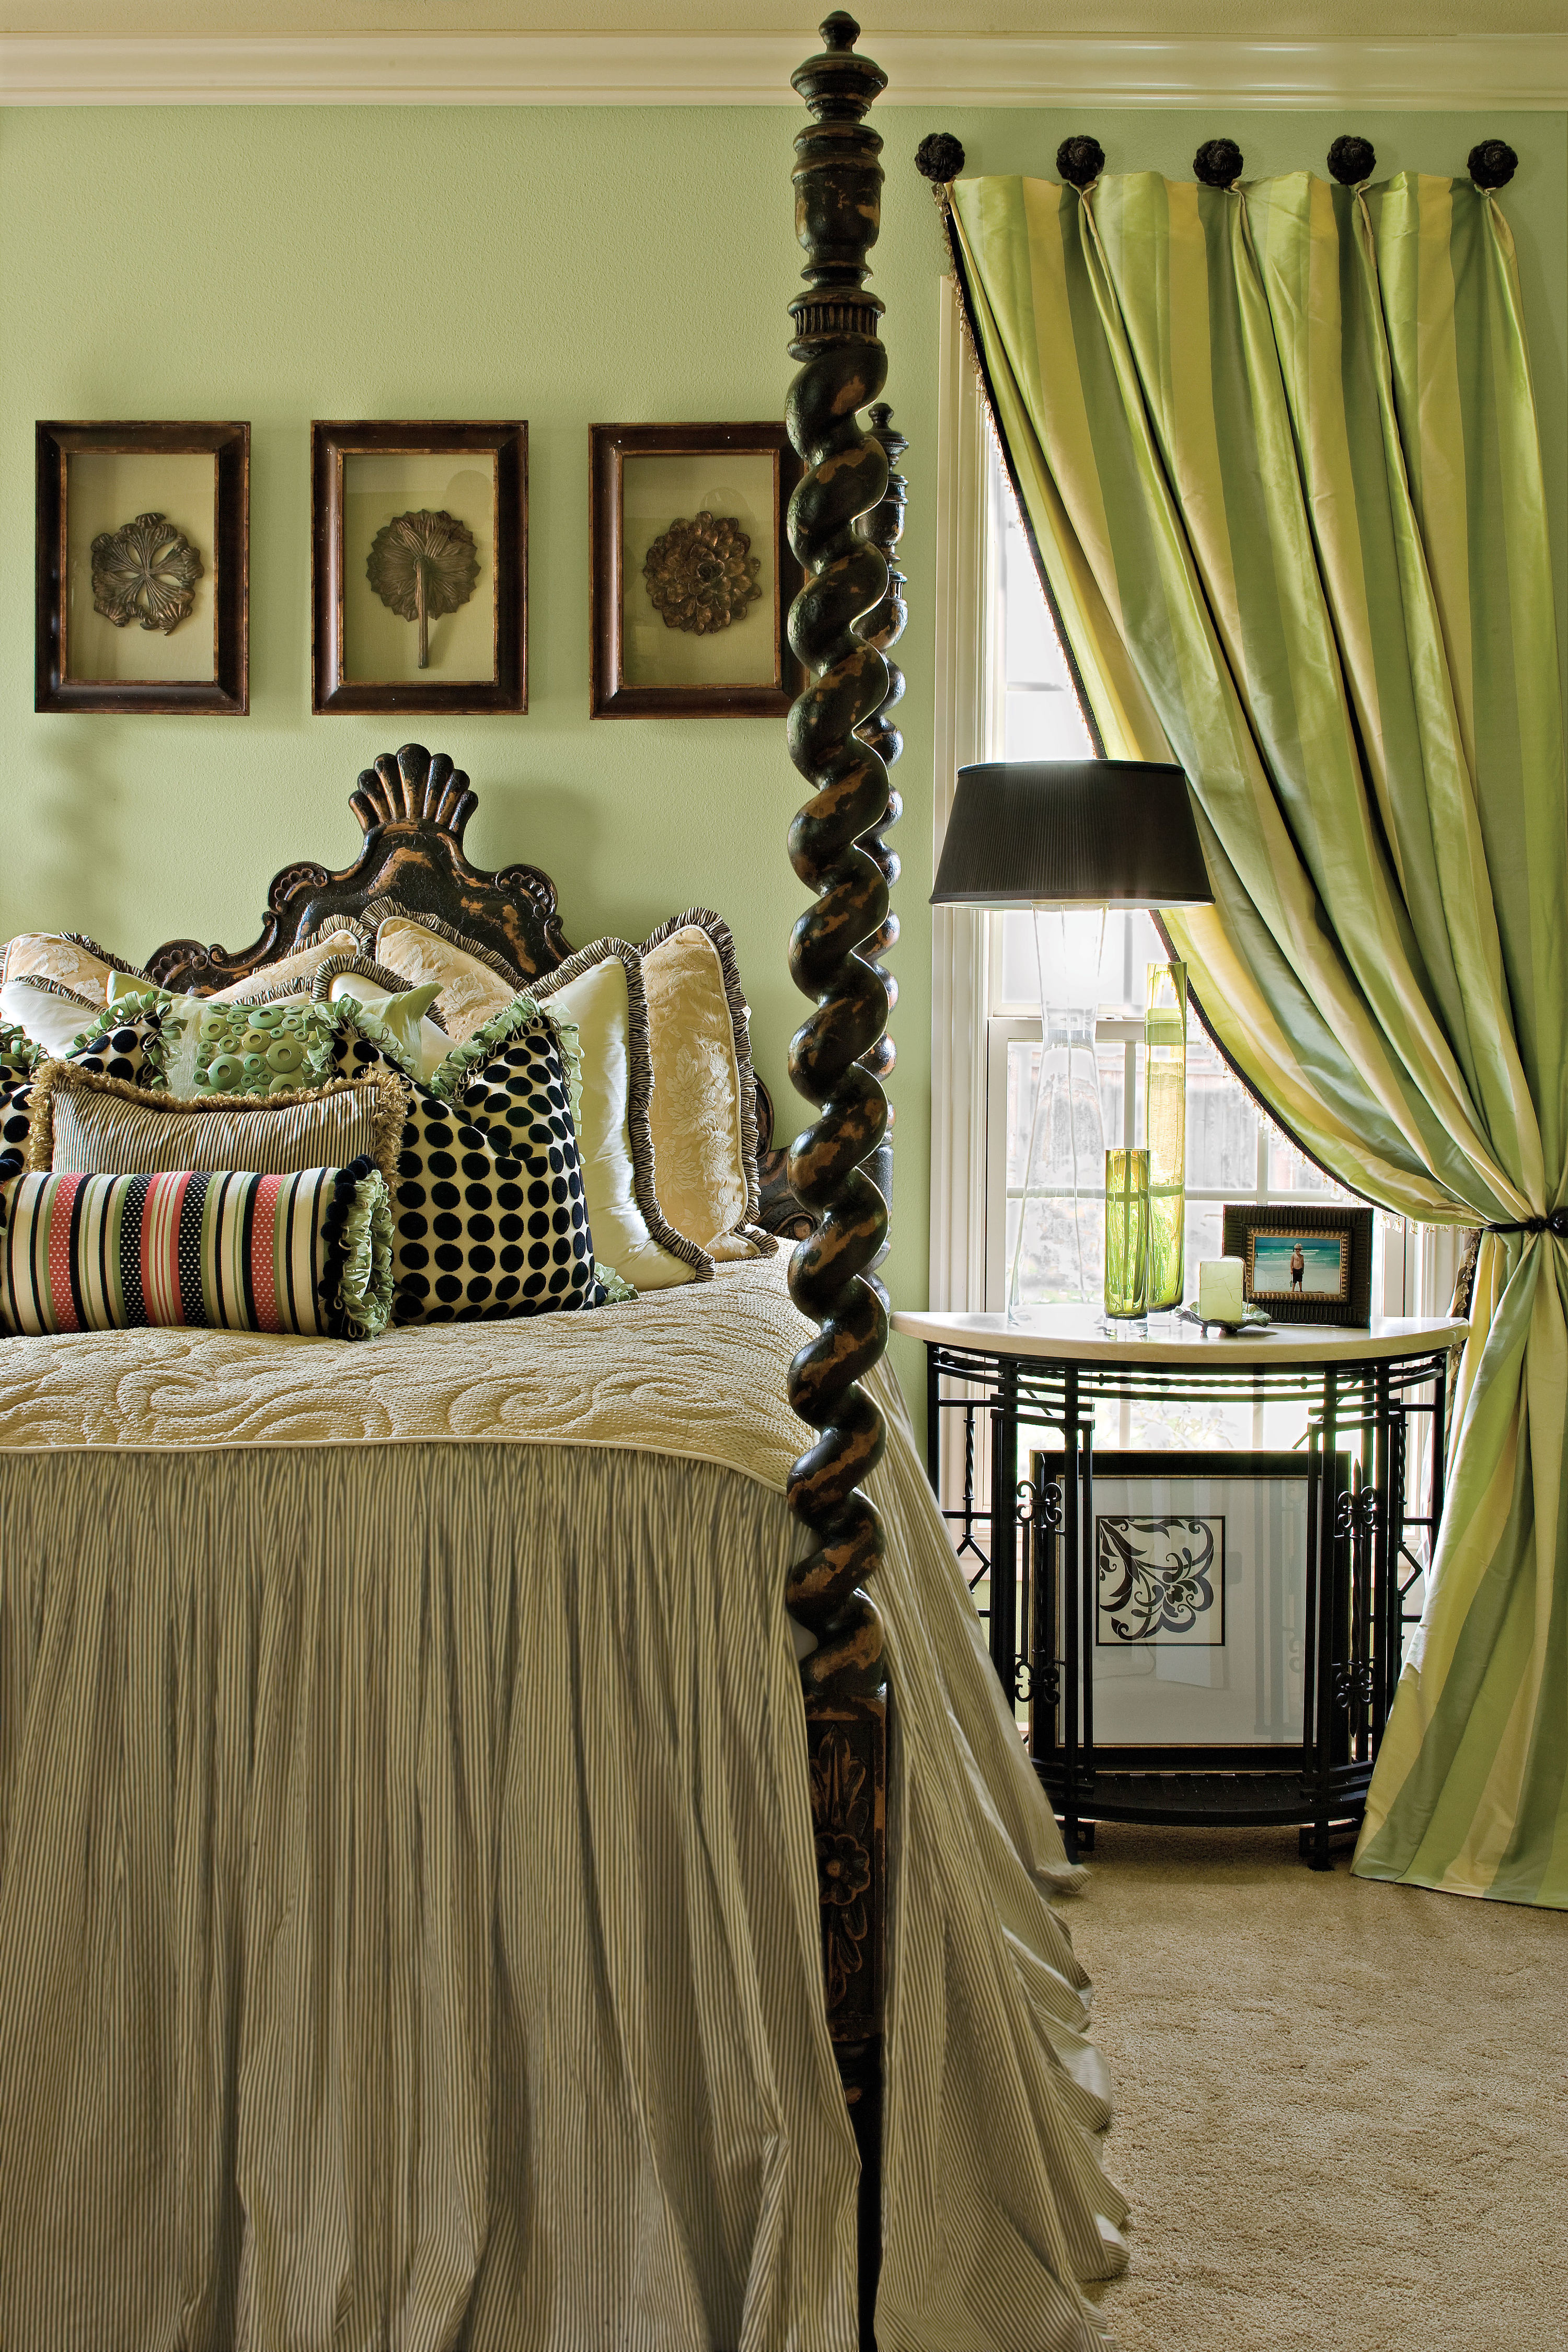 Master Suite in Shades of Green